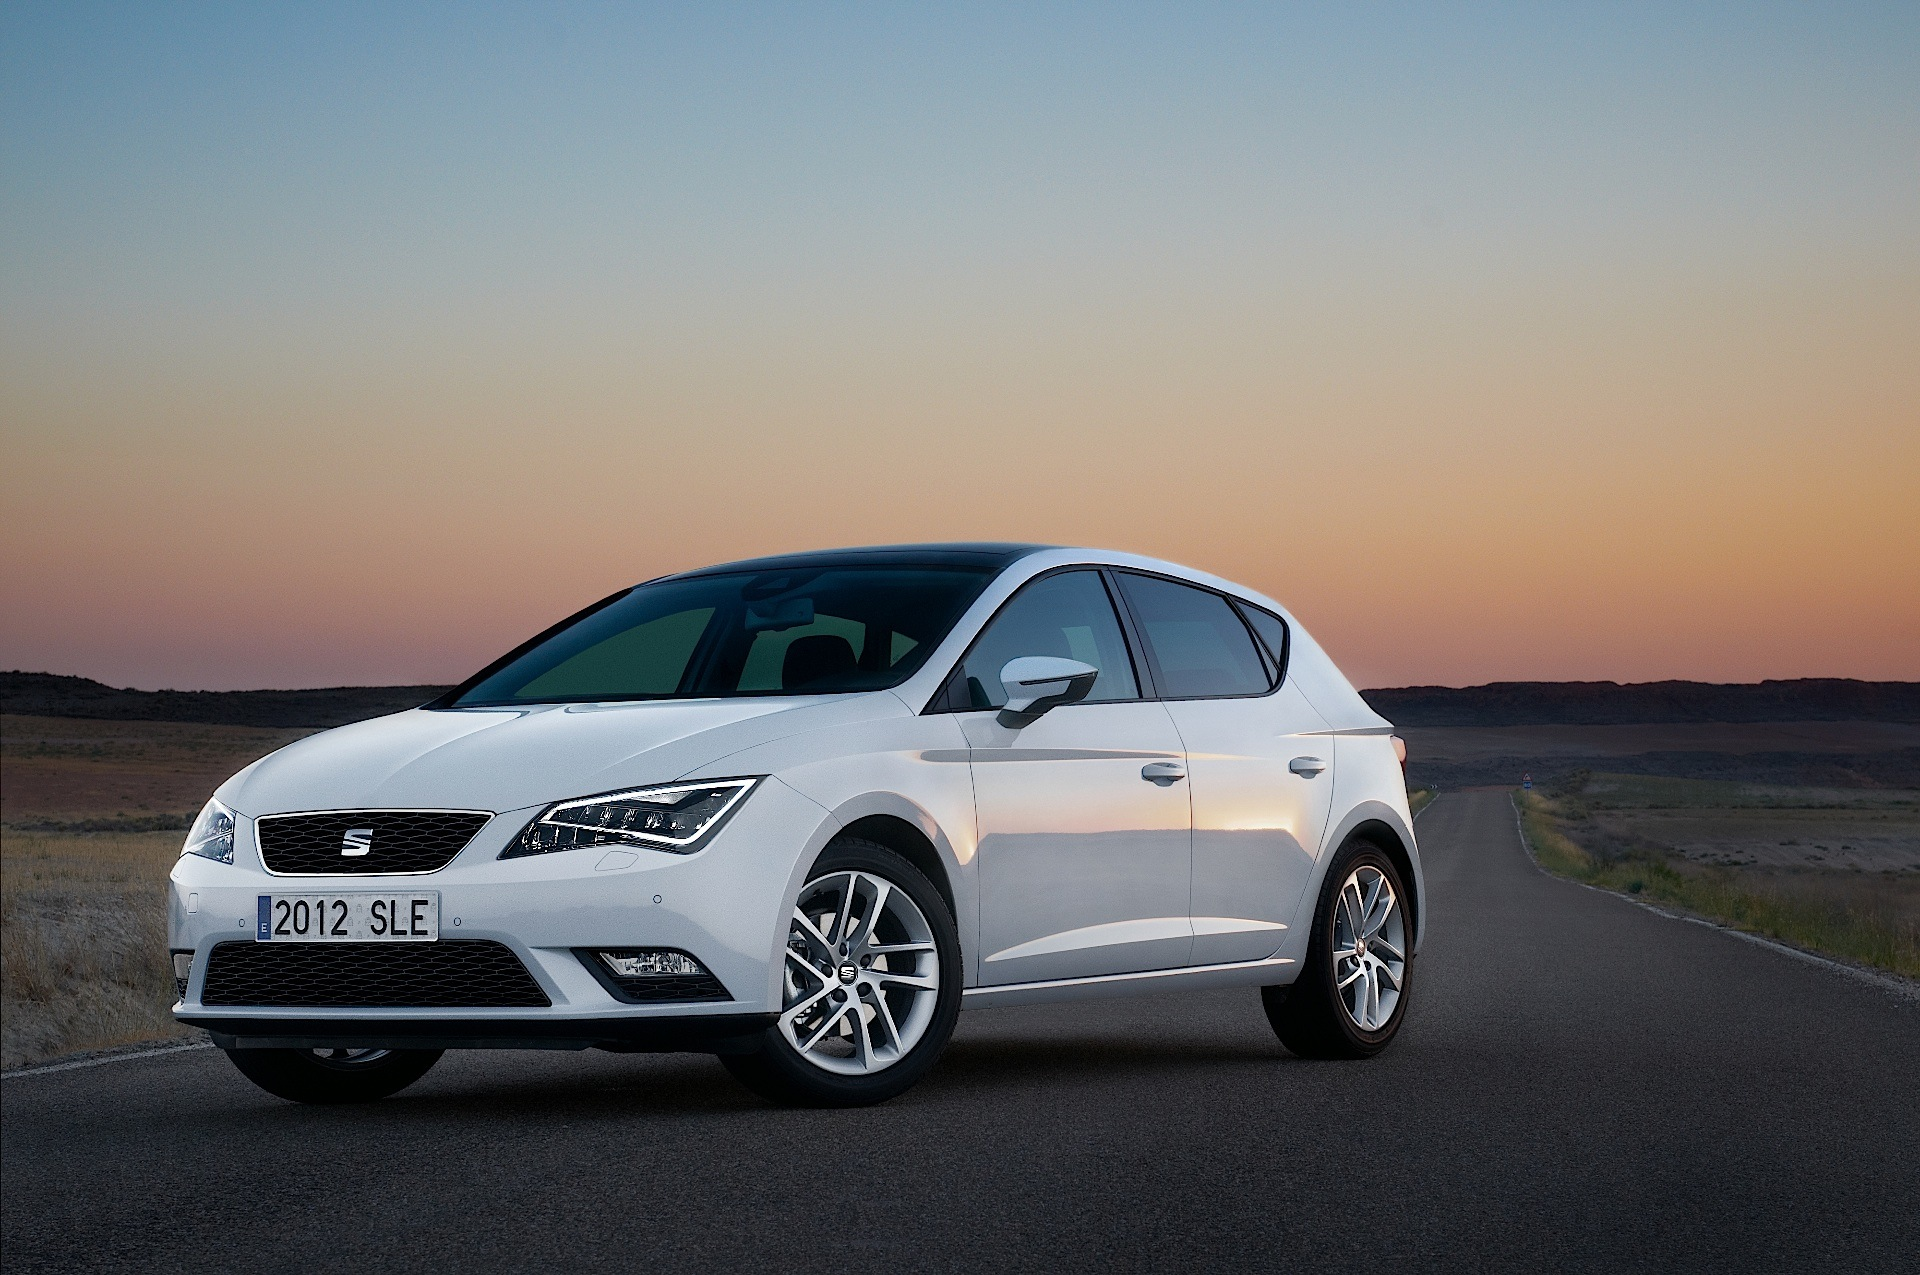 seat leon 5 doors specs photos 2012 2013 2014 2015 2016 2017 2018 autoevolution. Black Bedroom Furniture Sets. Home Design Ideas